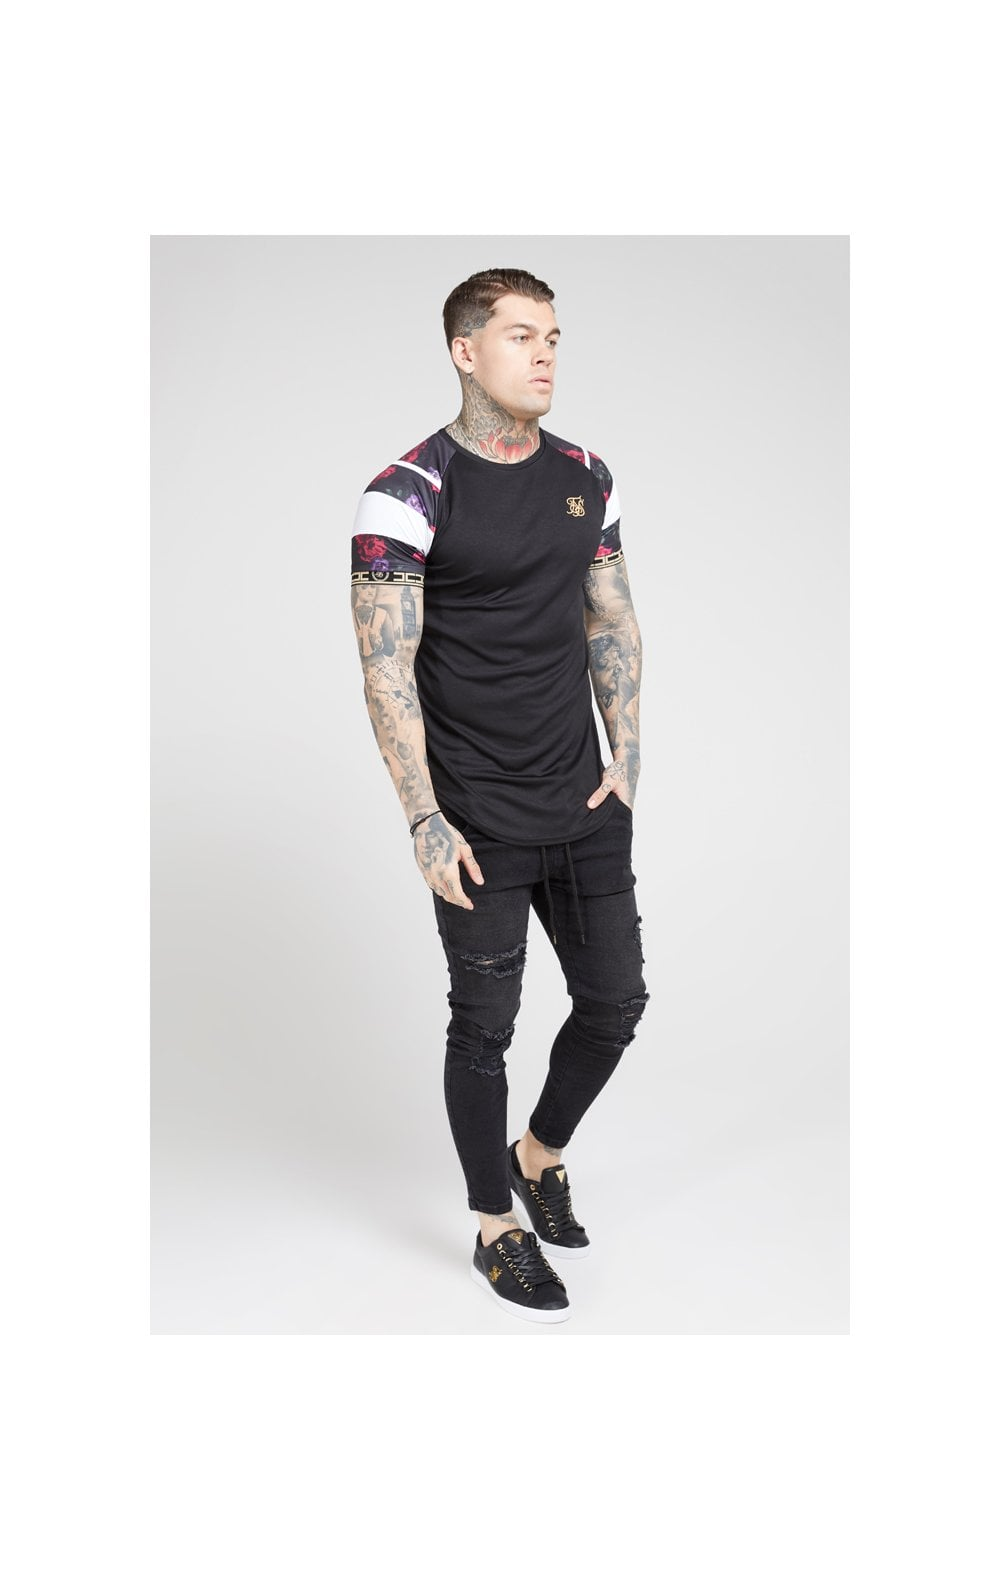 Load image into Gallery viewer, SikSilk S/S Raglan Sprint Tape Tee - Black & Oil Paint (3)